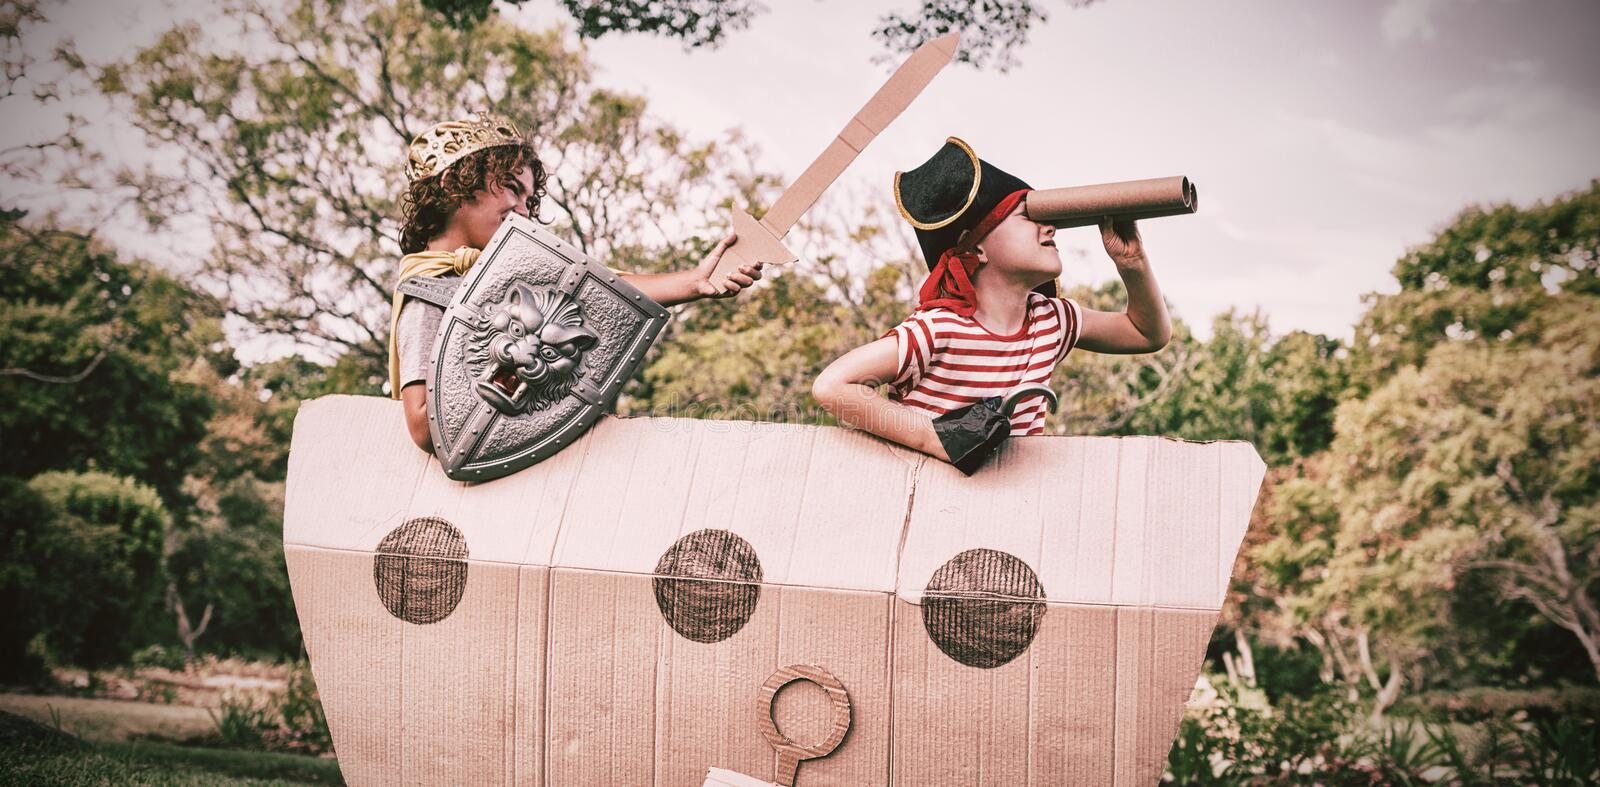 Two friends playing and dressing up royalty free stock photos